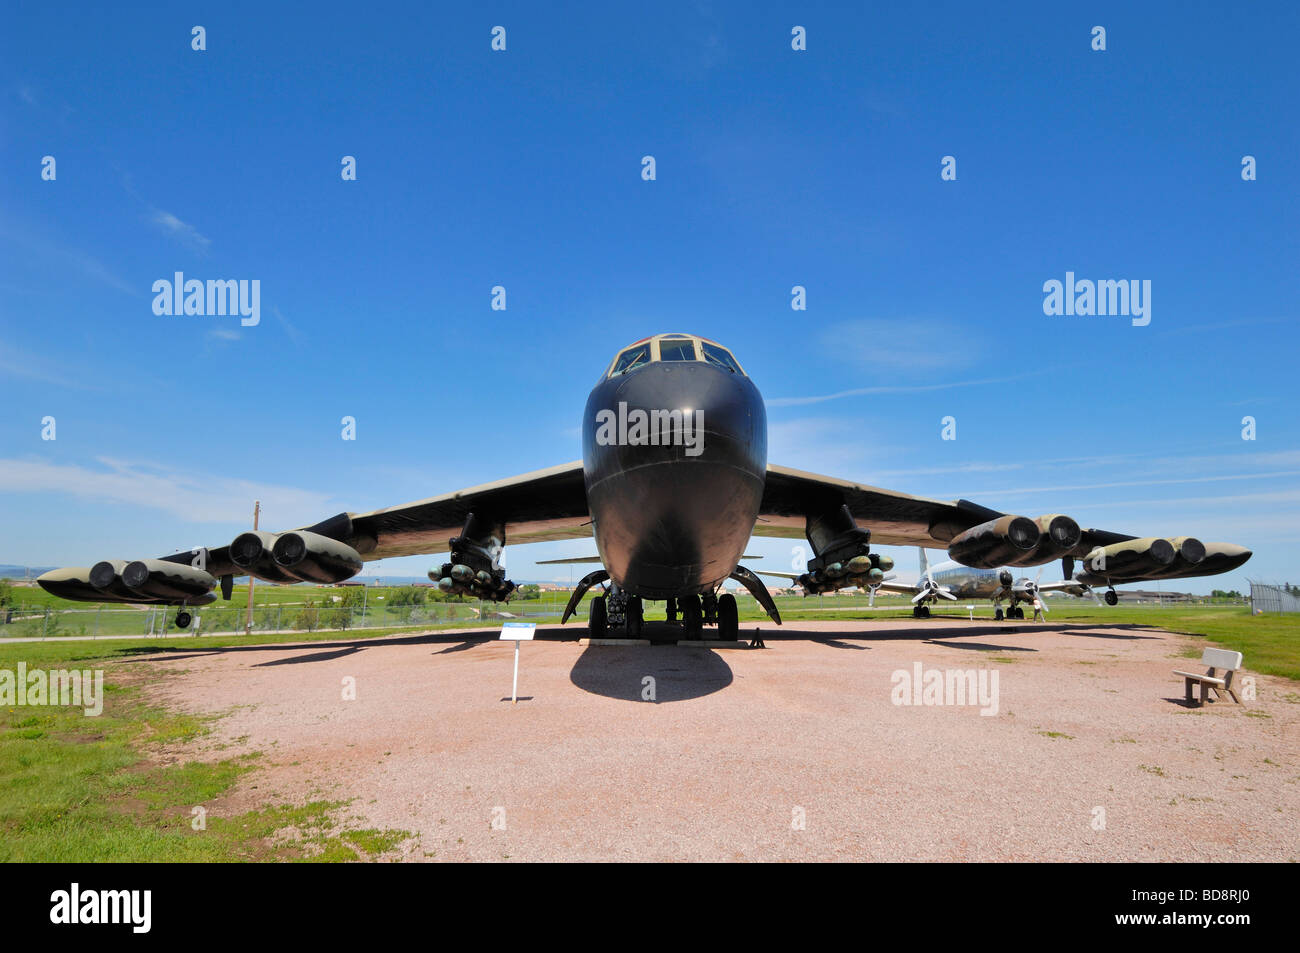 Boeing B 52D Stratofortress aircraft at South Dakota Air and Space Museum near Rapid City - Stock Image